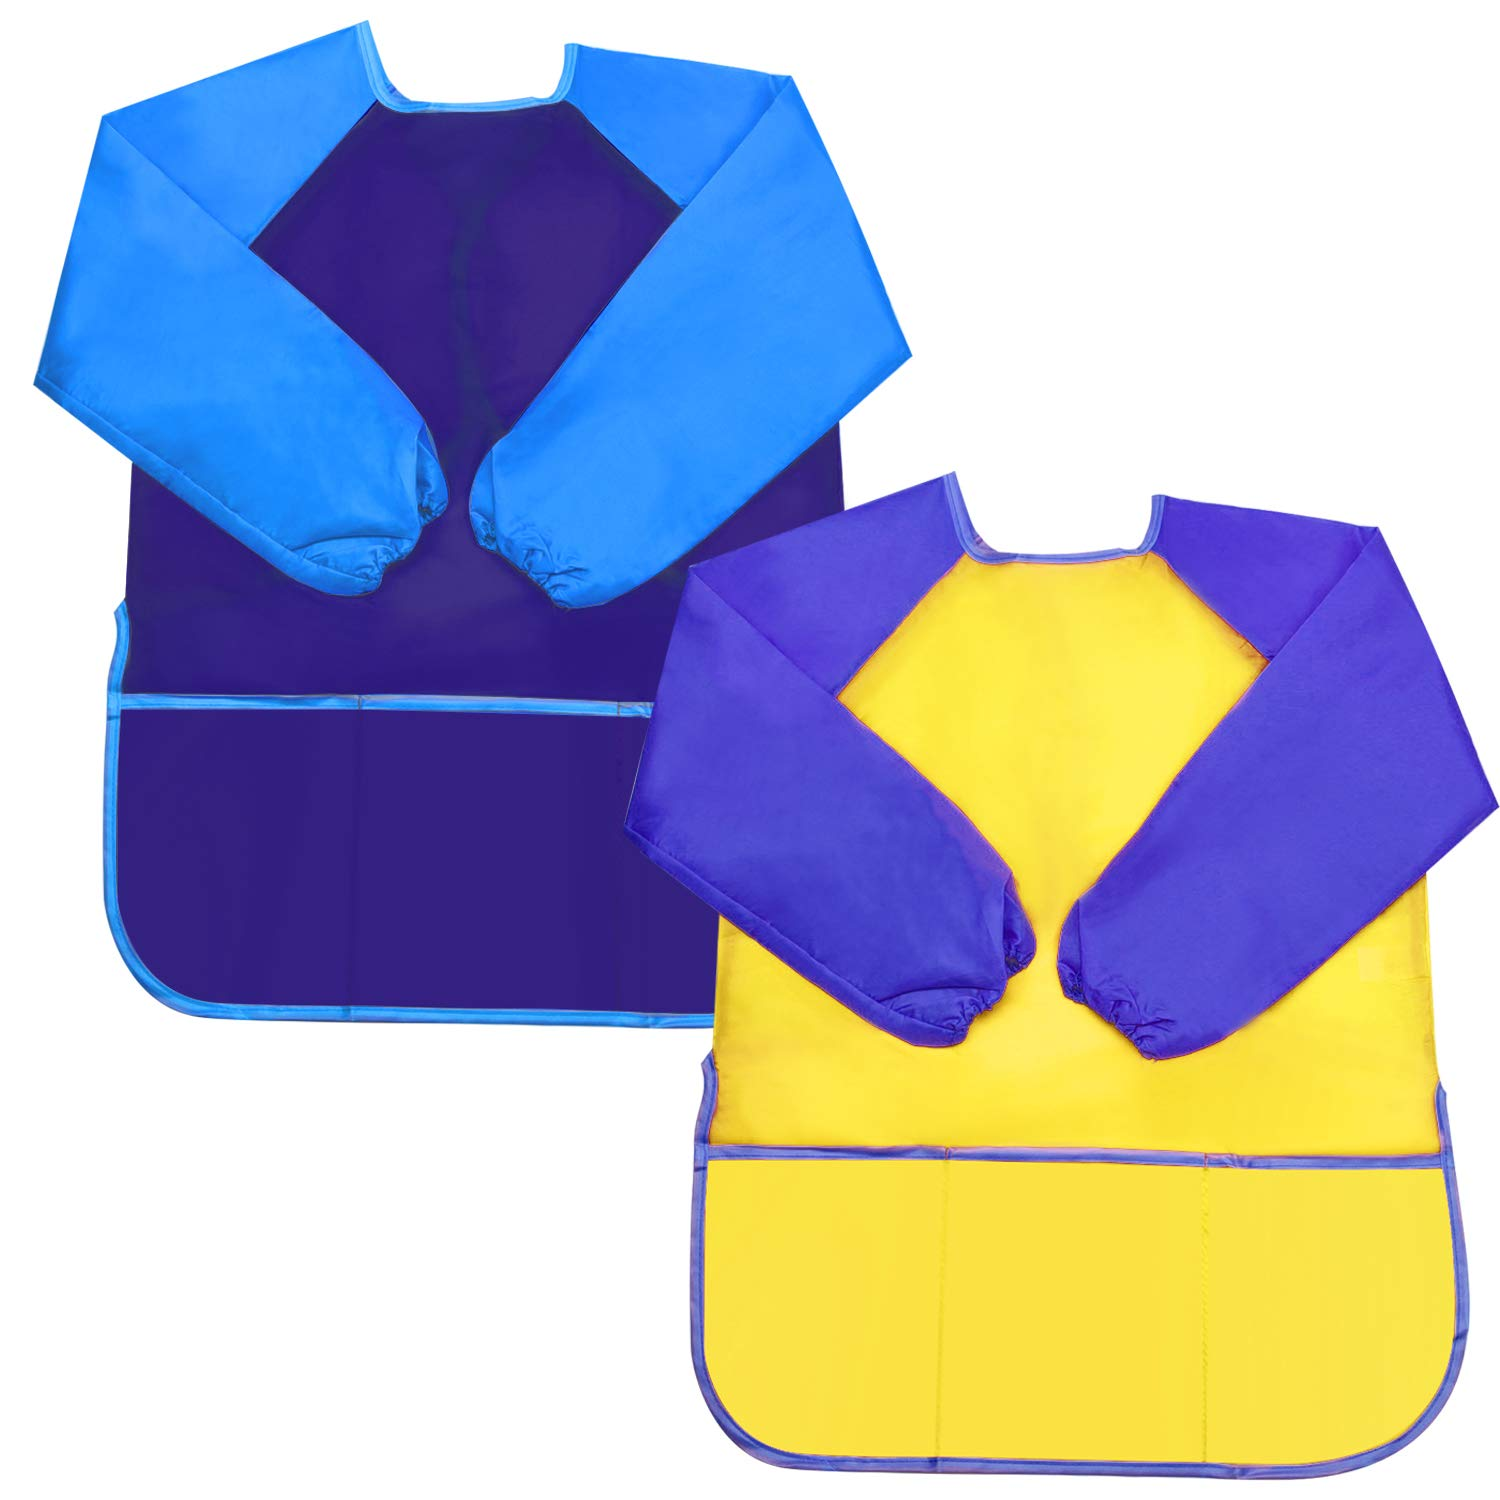 Sunmns Kids Art Smocks, Children Boy Waterproof Artist Painting Aprons Long Sleeve with 3 Pockets for Age 3-5 Years, 2 Pieces (Yellow, Blue) SunmnDirect